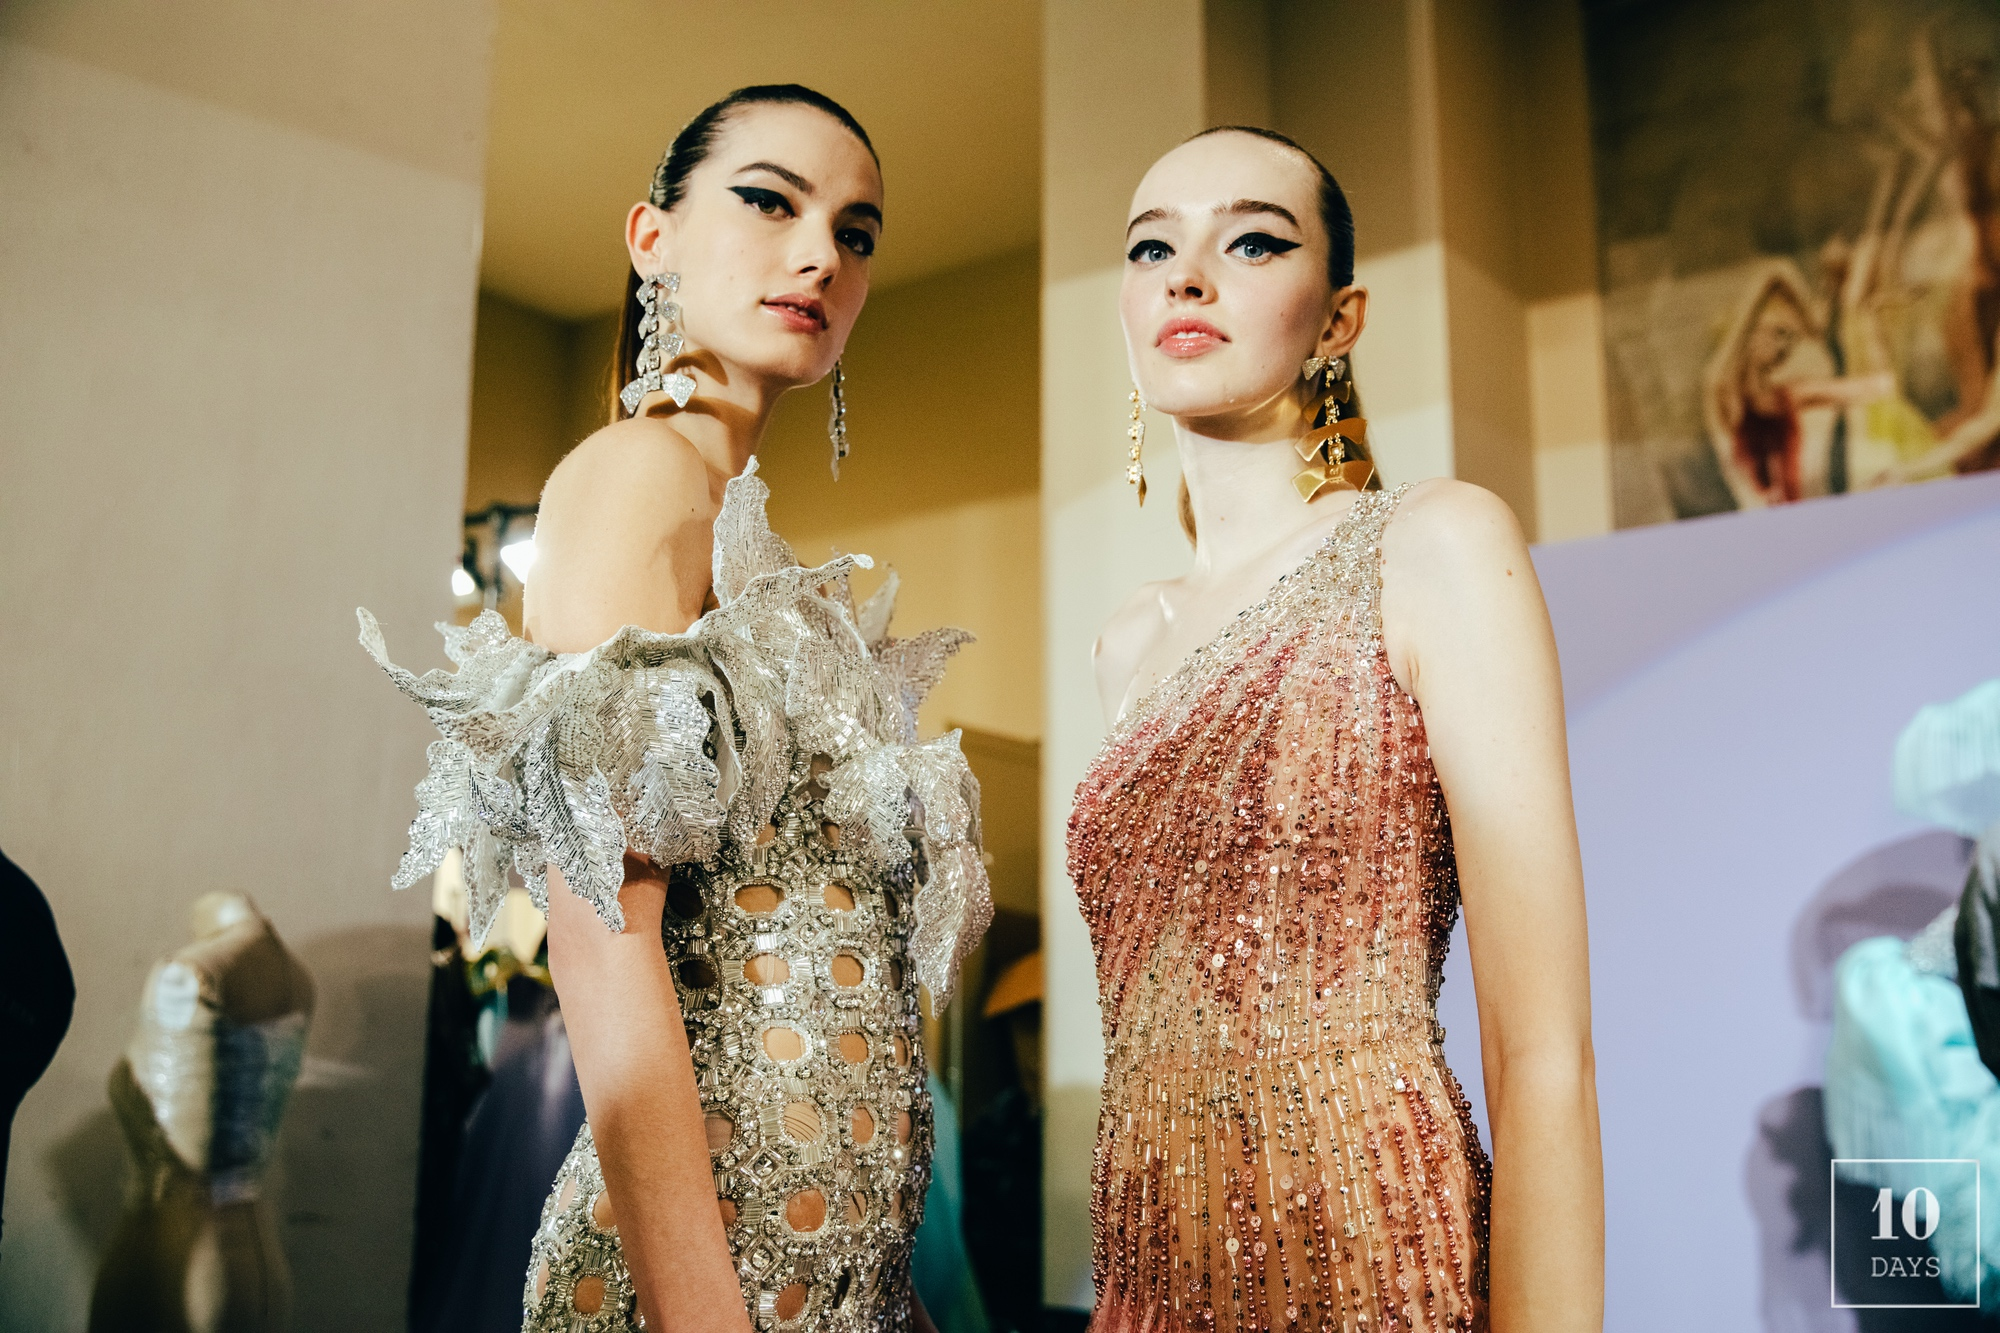 GEORGES HOBEIKA AW 20/21 BACKSTAGE